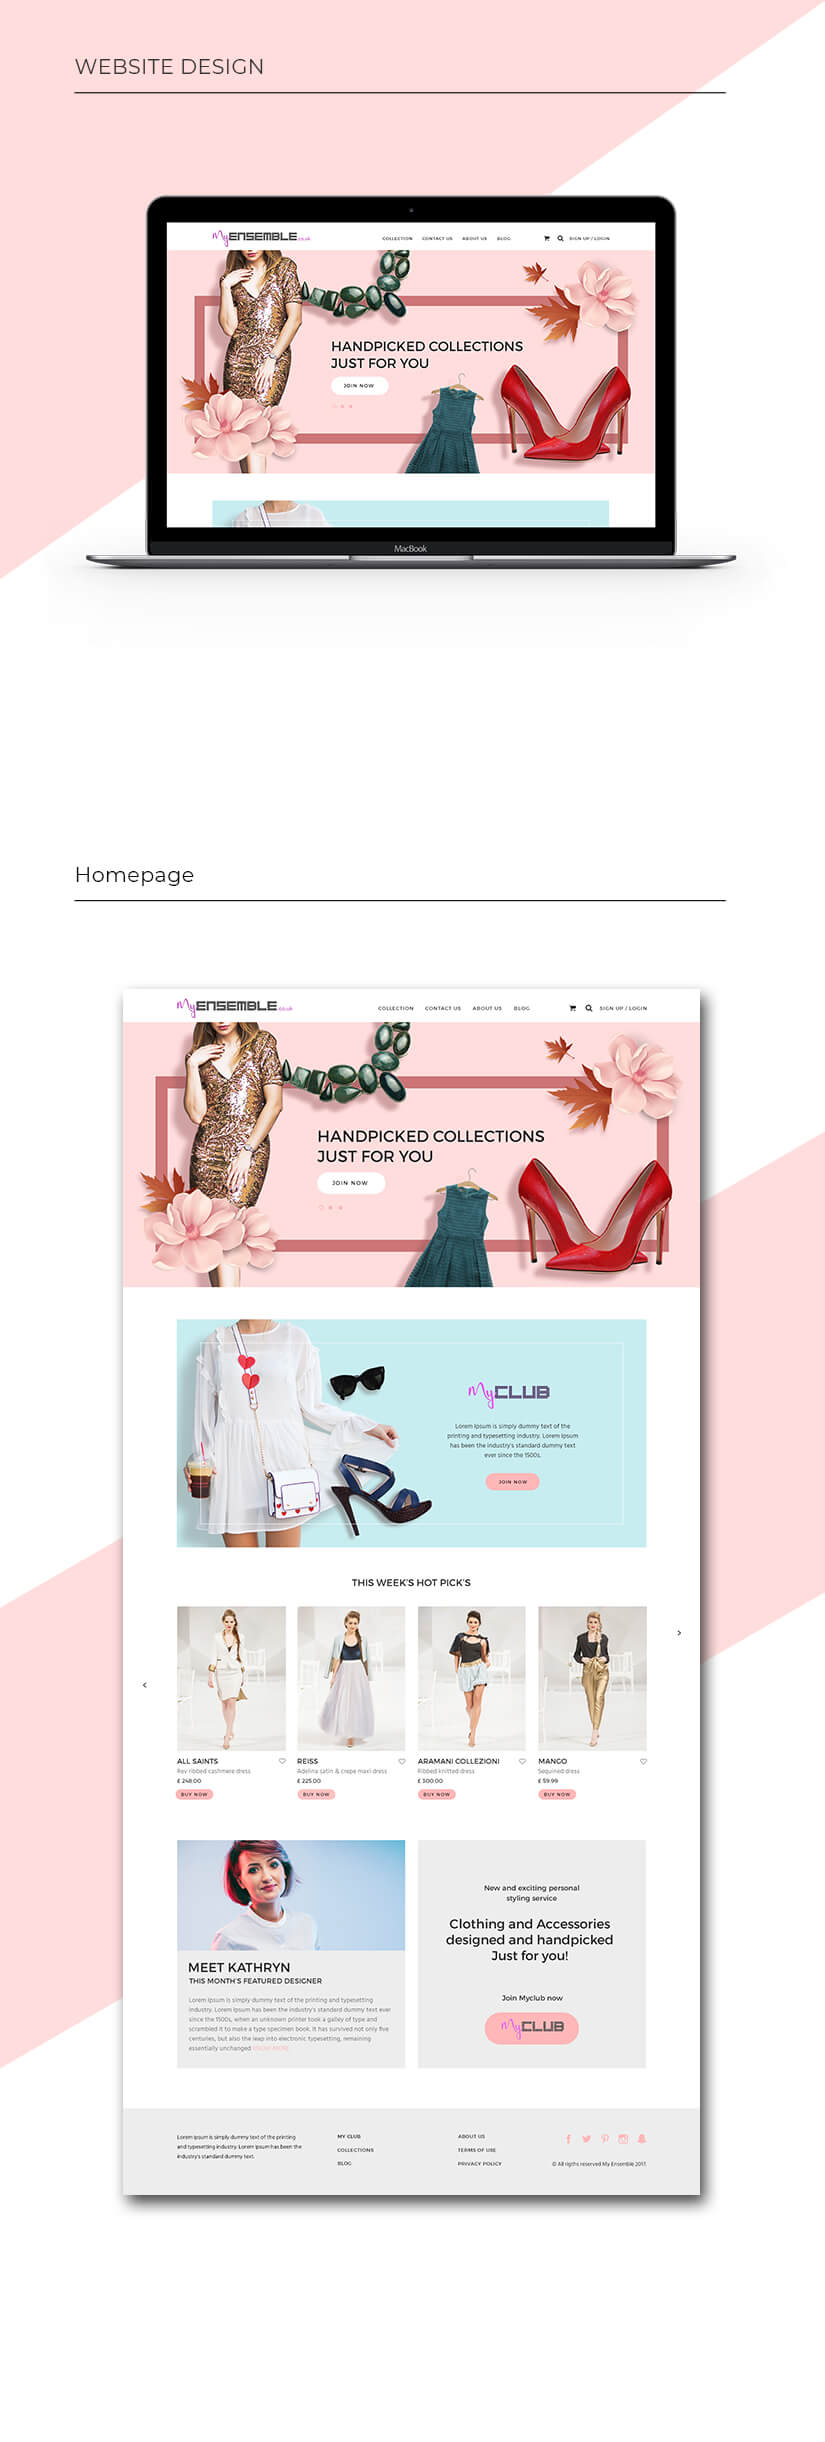 My Ensemble E-Commerce website homepage design